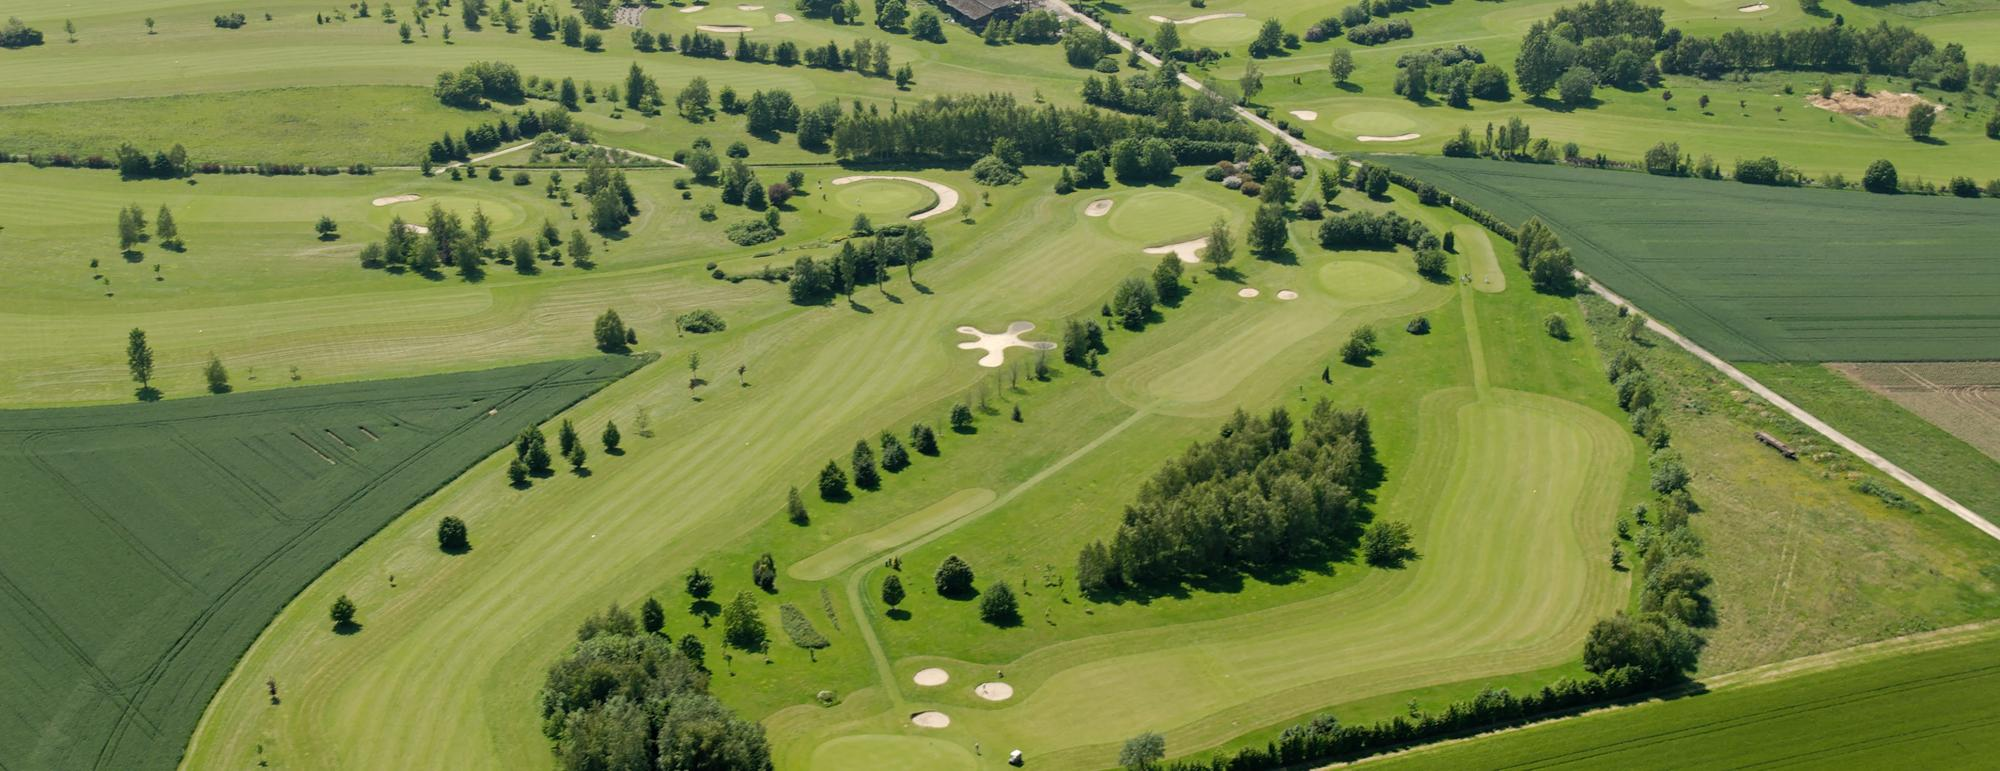 Golf La Bruyere carries several of the finest golf course around Brussels Waterloo & Mons